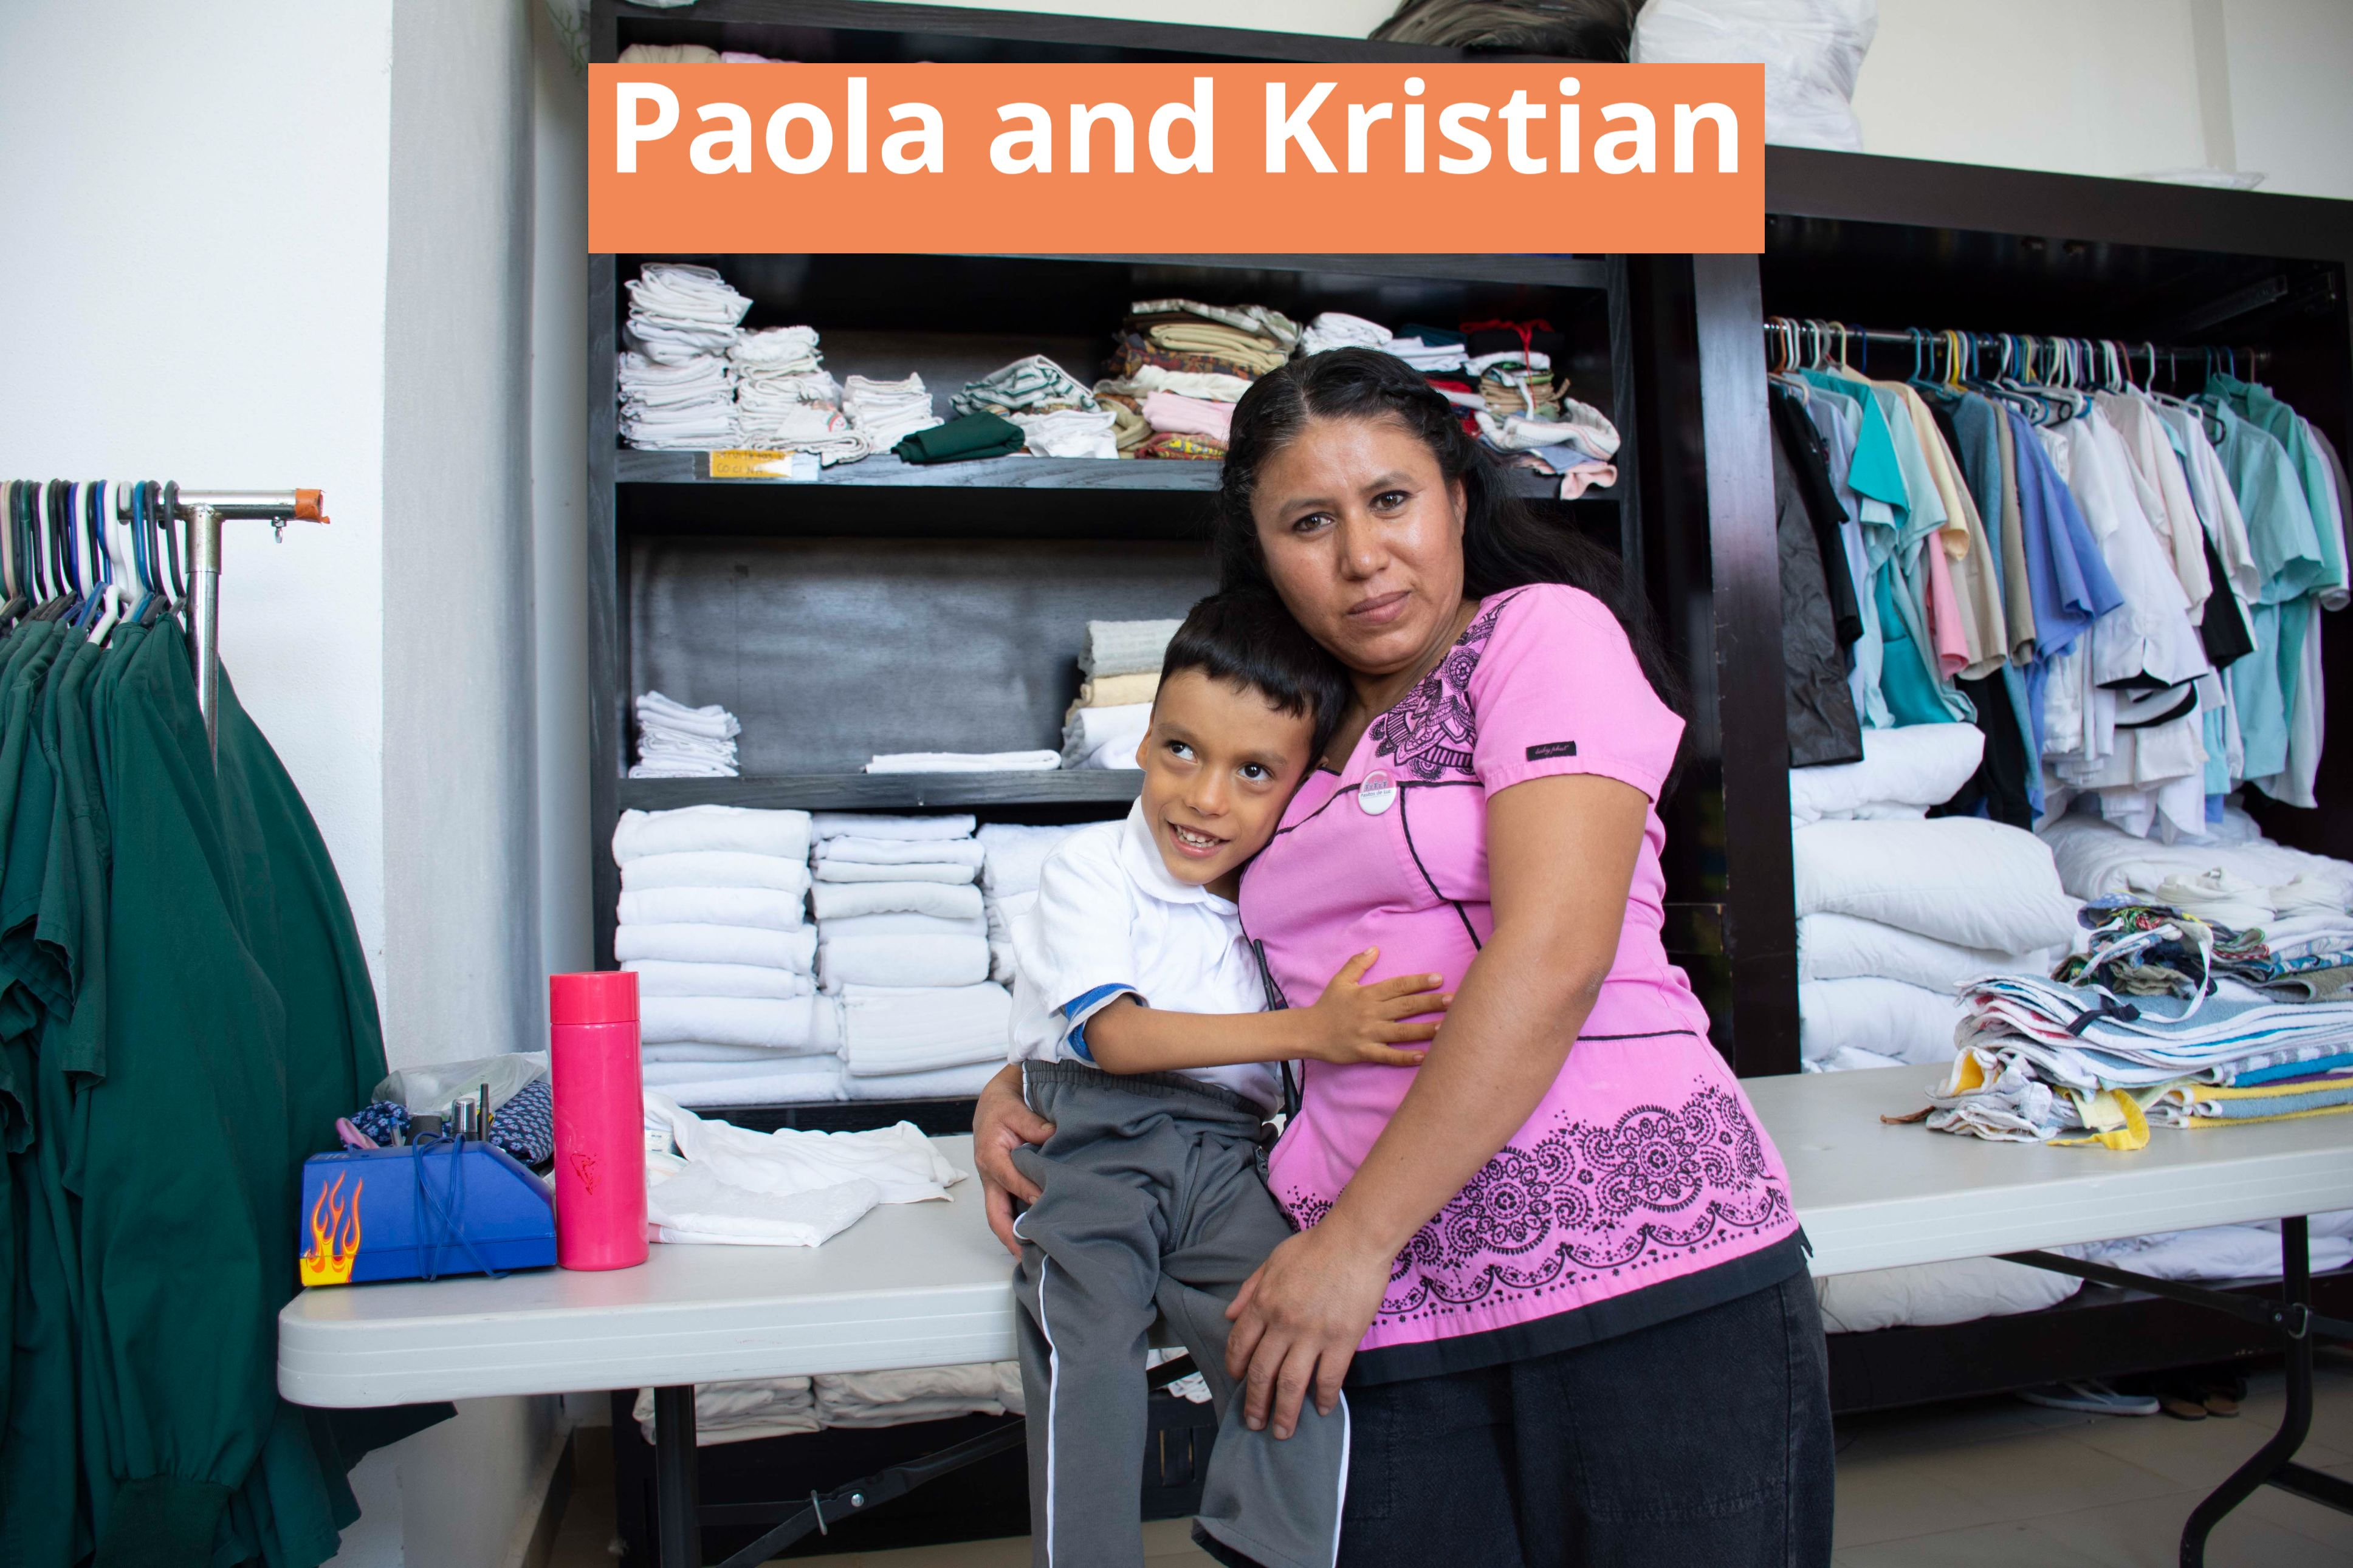 Paola and Kristian in the laundry